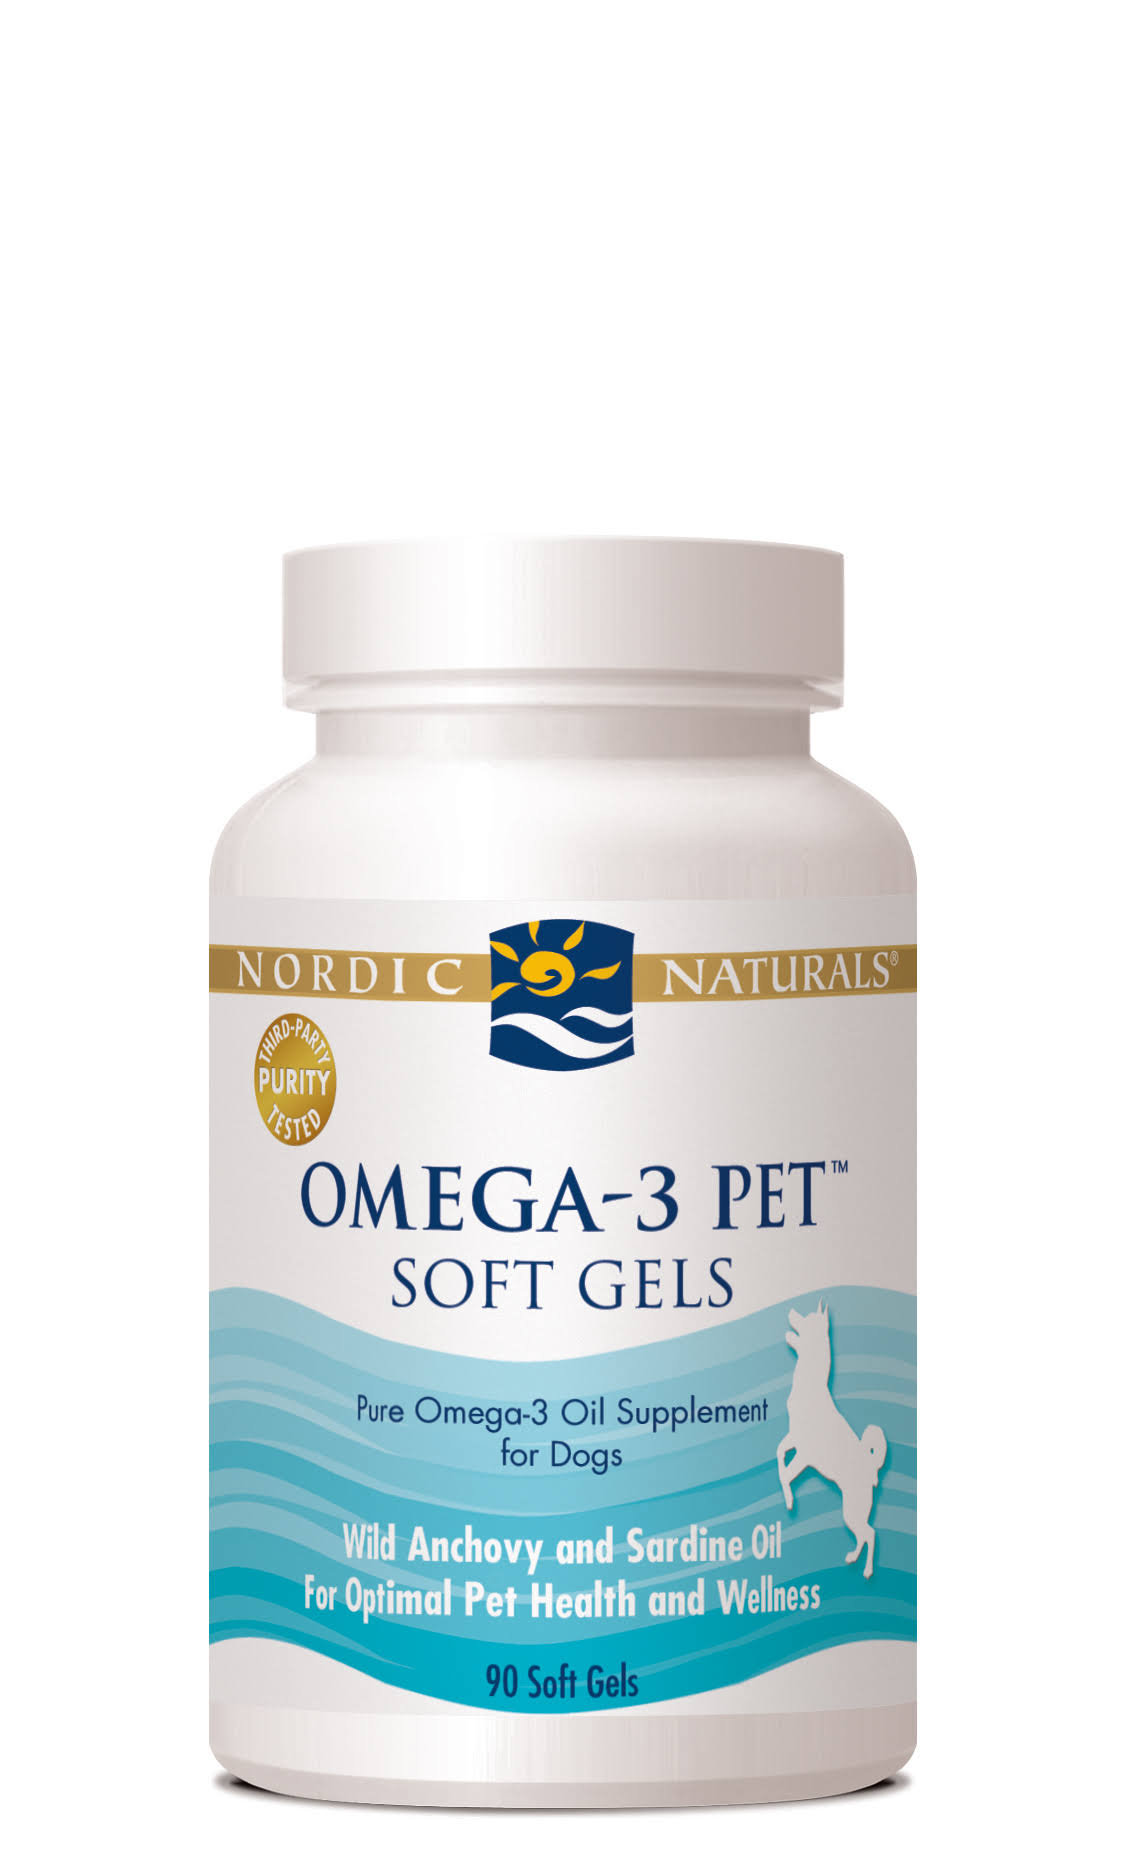 Nordic Naturals Omega-3 Oil Pet for Dogs - 90 Soft Gels